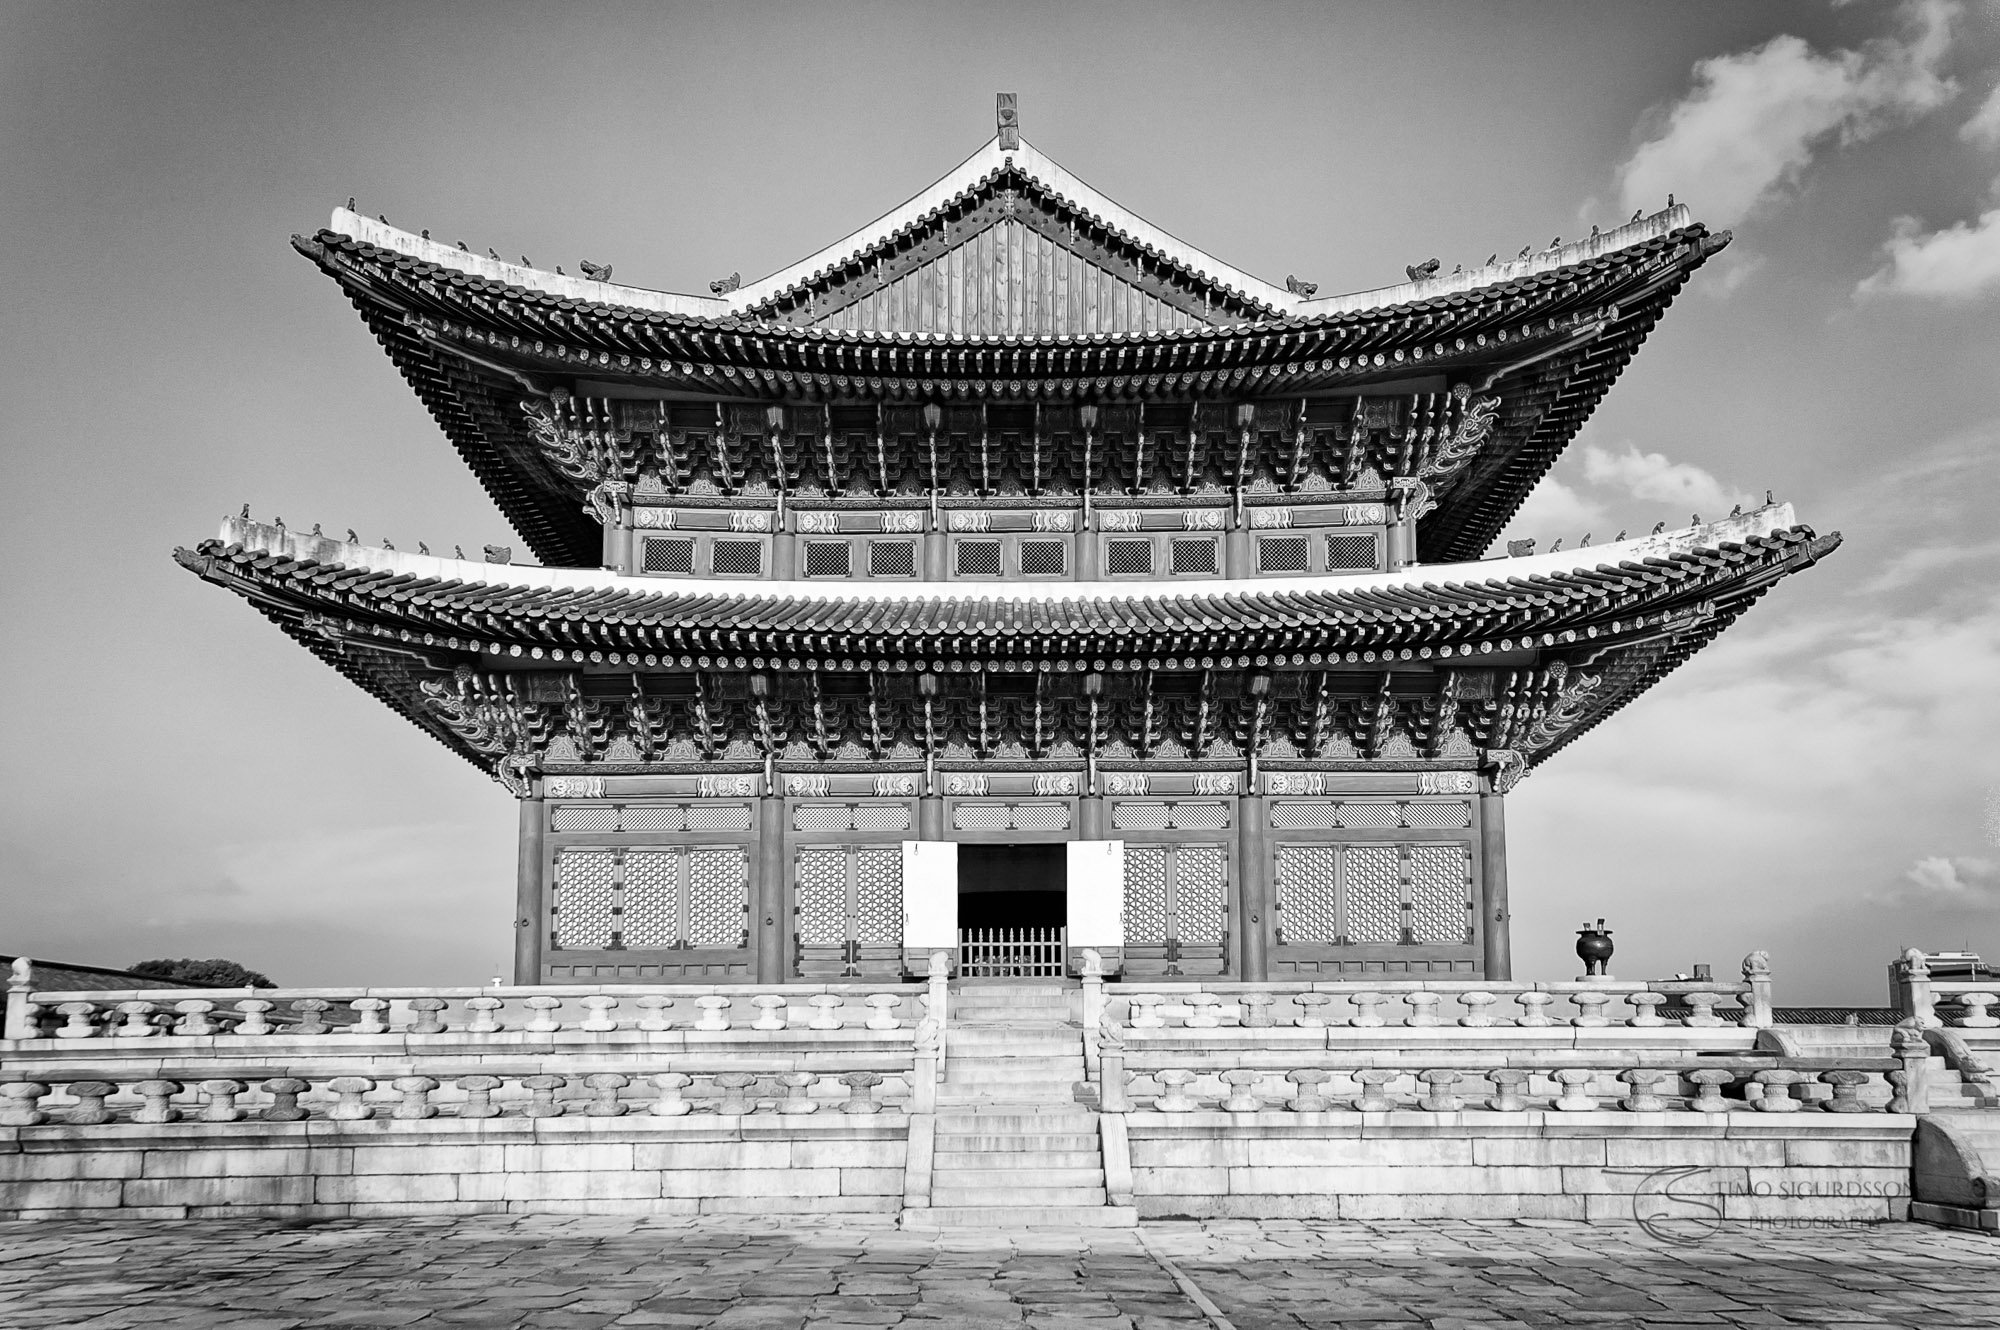 Gyeongbokgung Palace, Seoul, South Korea.